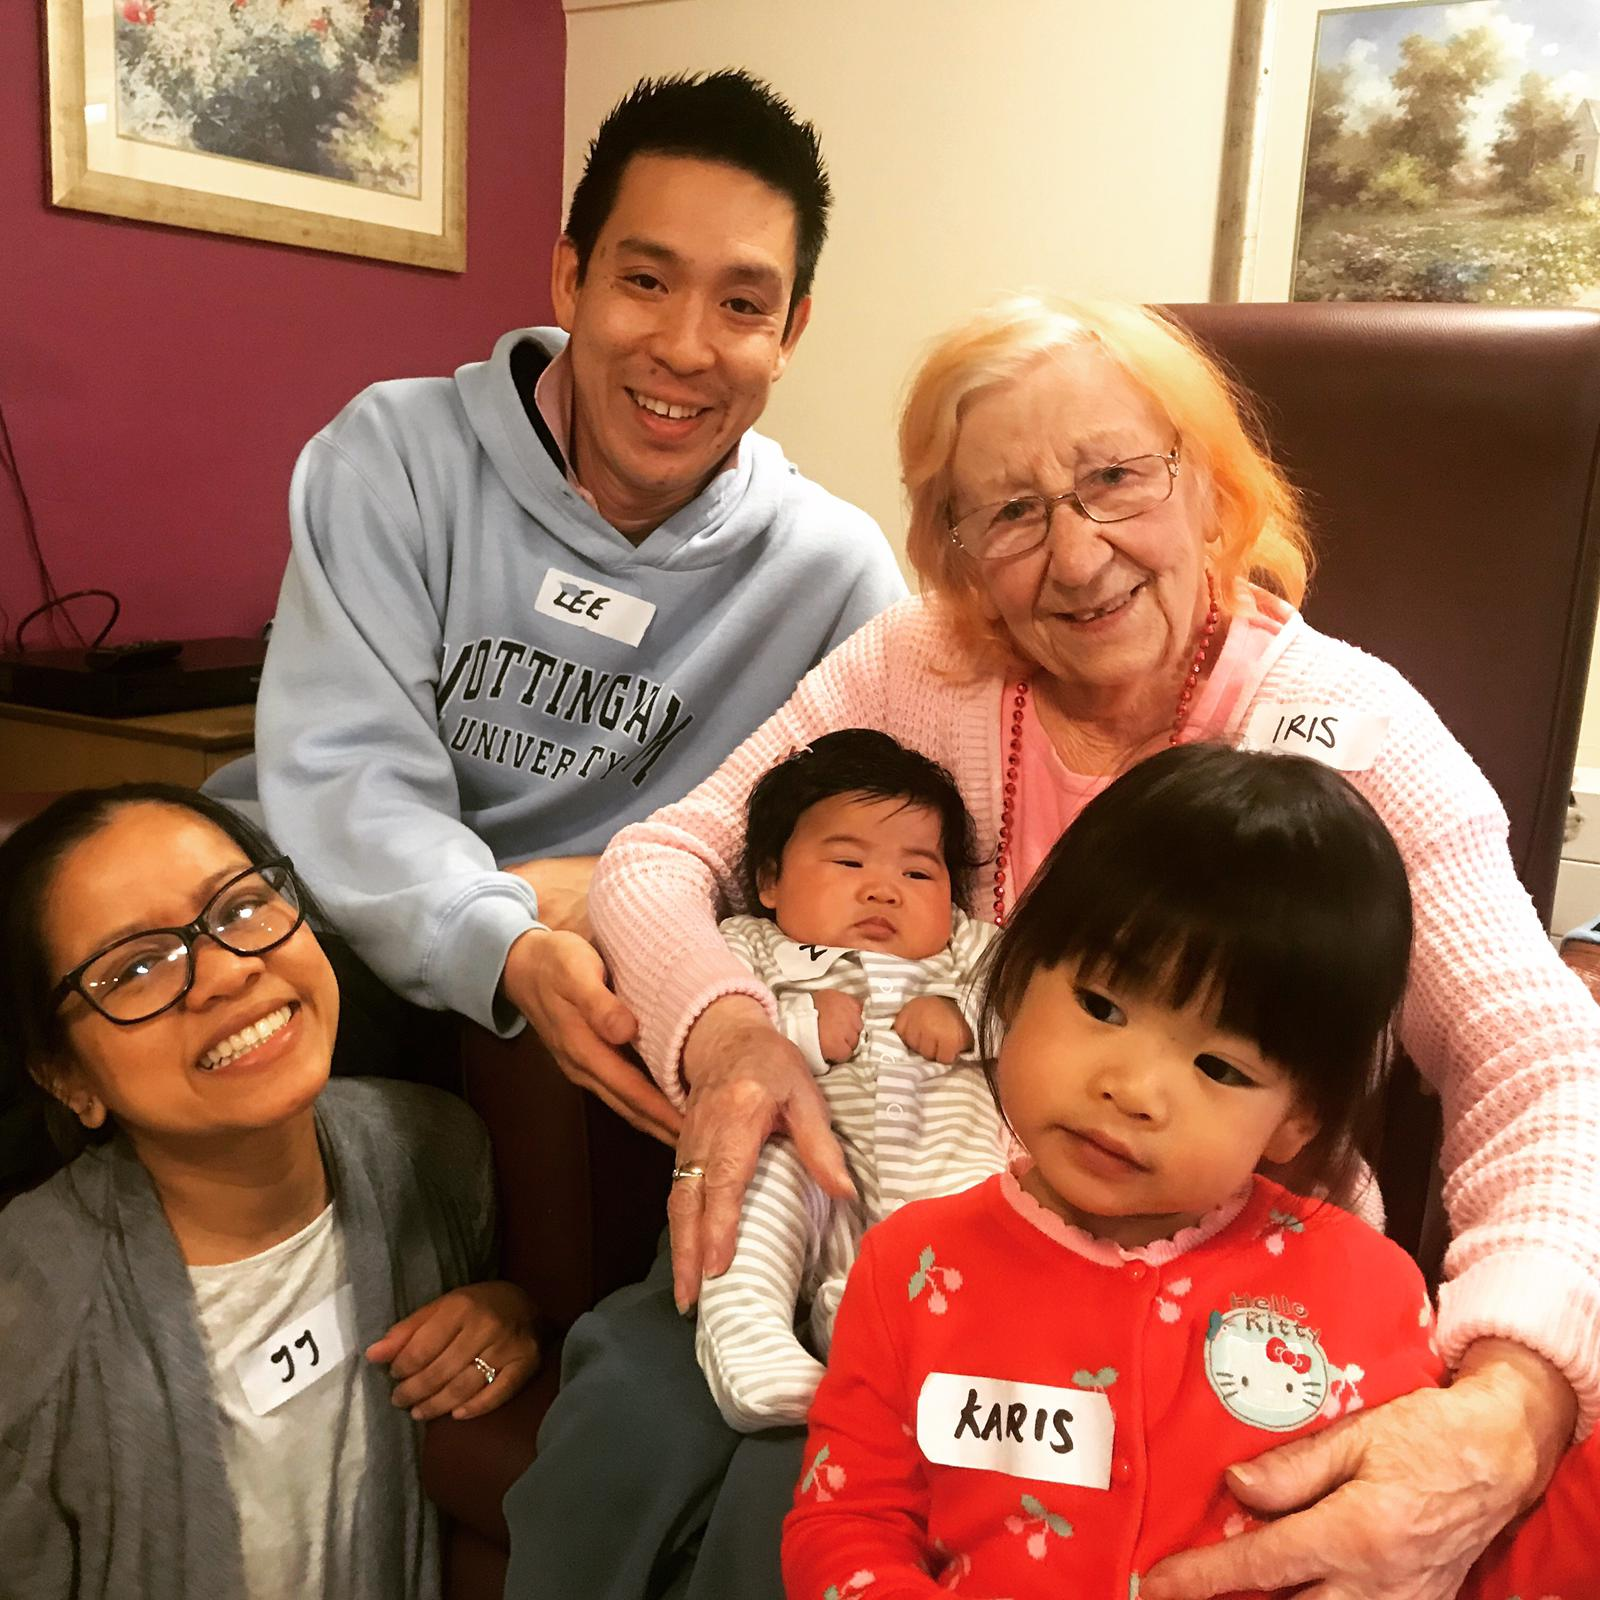 Dad Lee, mum JJ, Karis and baby Zoe getting to know Summerdale Court resident Iris at Songs & Smiles